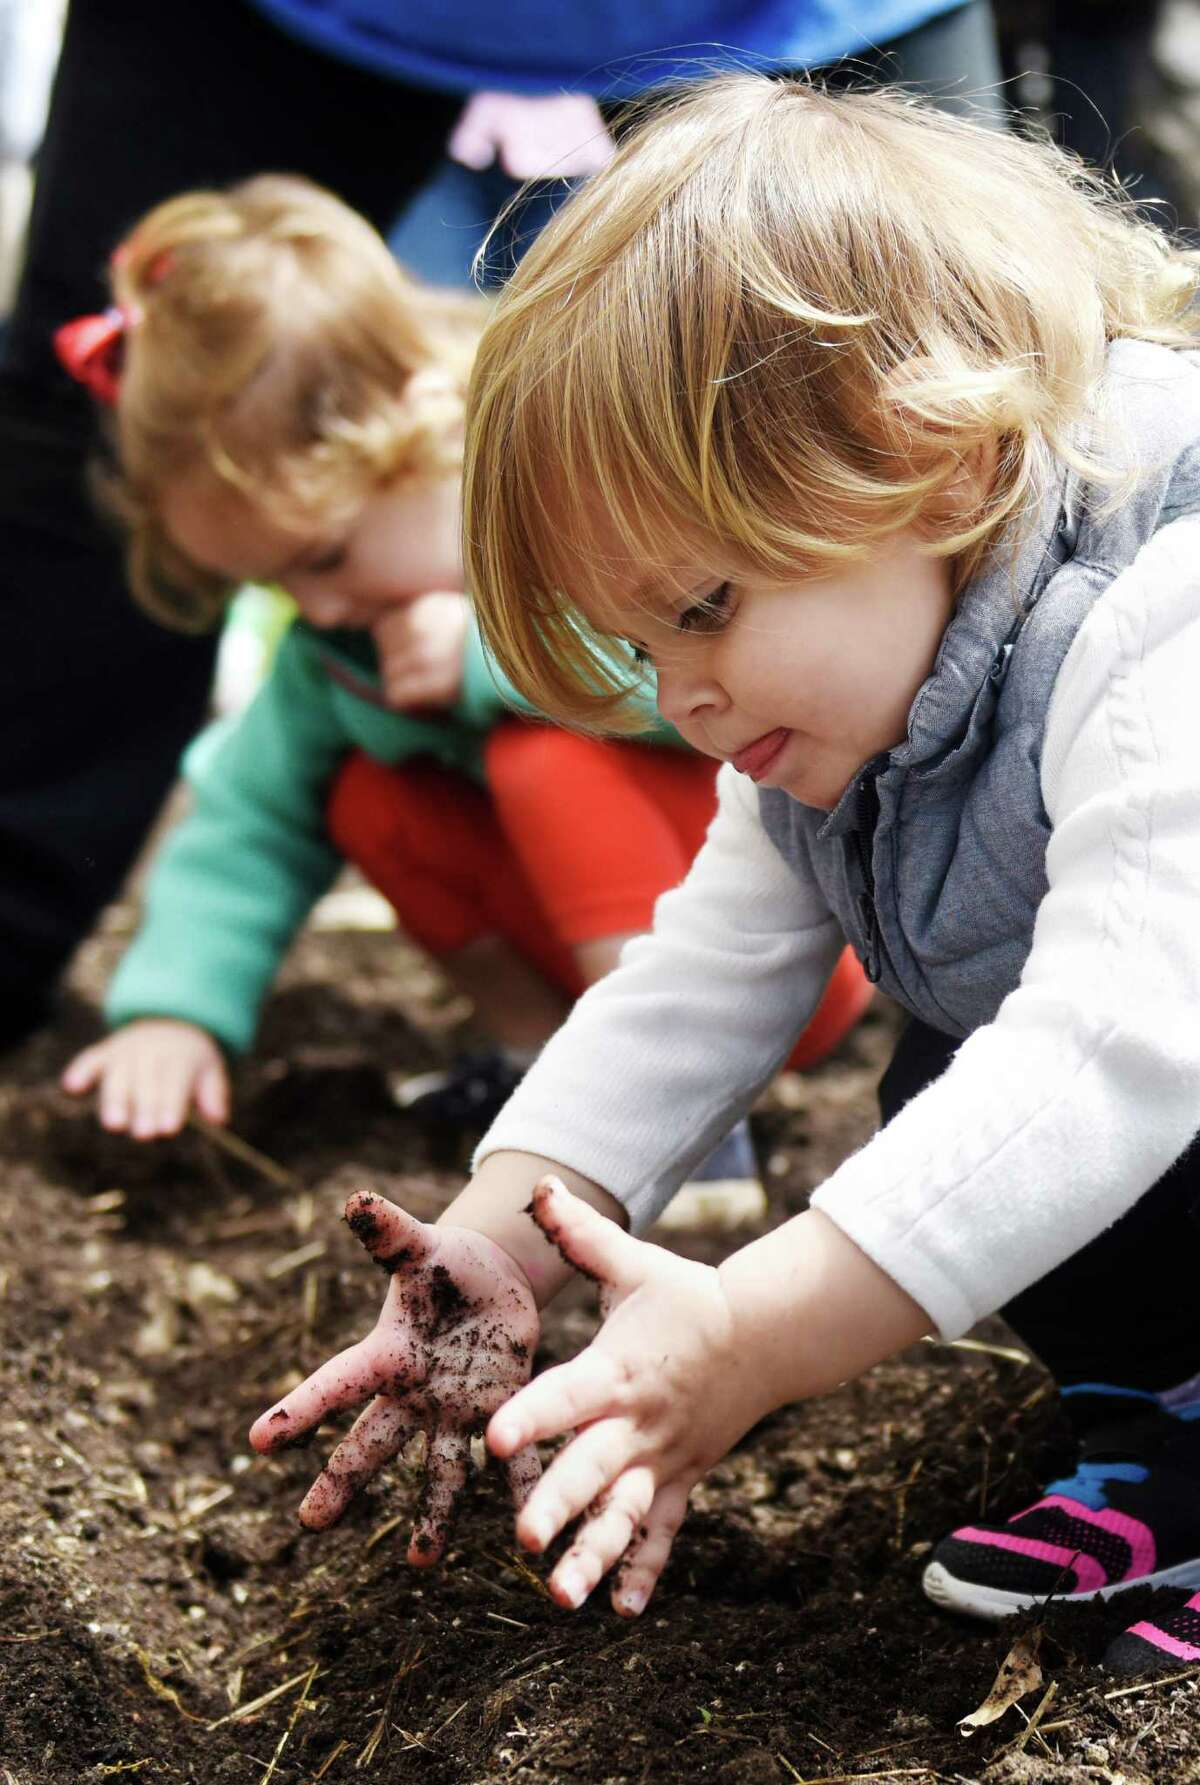 Nora Gutman, 2, gets her hands dirty while planting seeds in the school garden outside Putnam Indian Field School in Greenwich on Tuesday. The kids celebrated their school's designation as a Connecticut Green Leaf School by doing some morning planting in the garden beds on PIFS' annual planting day.